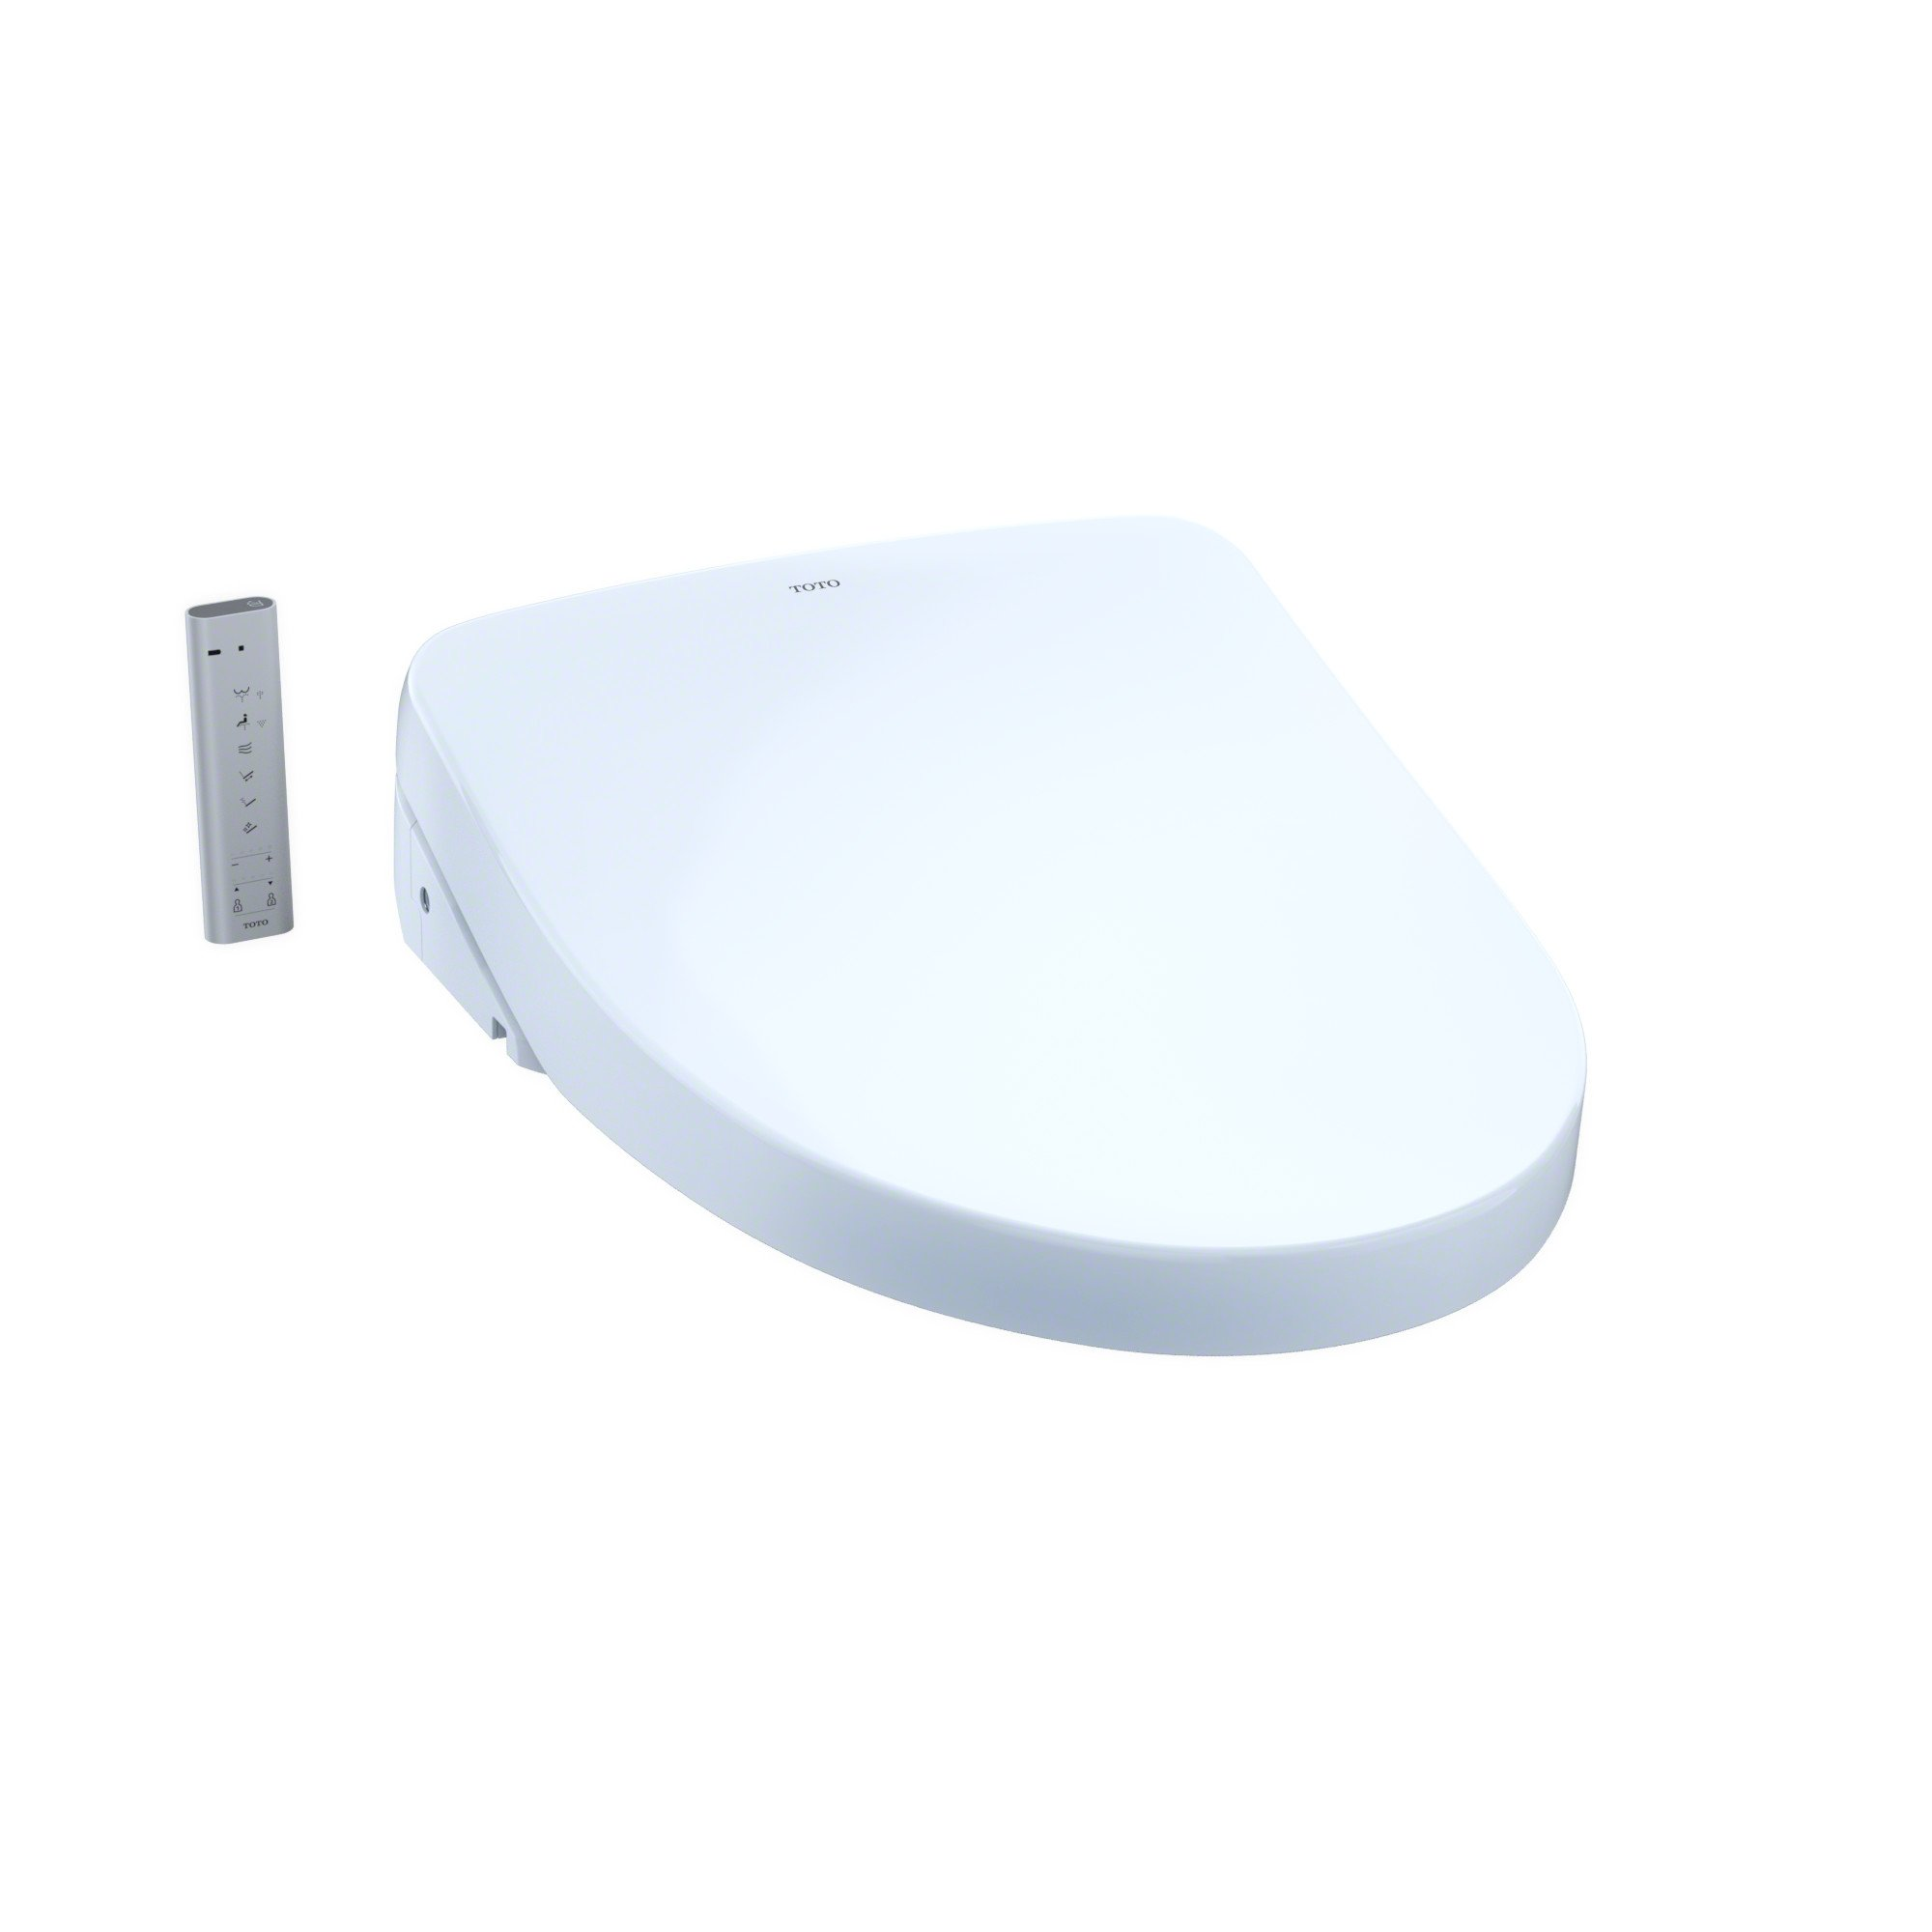 Cheap Toto Toilet Lid, find Toto Toilet Lid deals on line at Alibaba.com